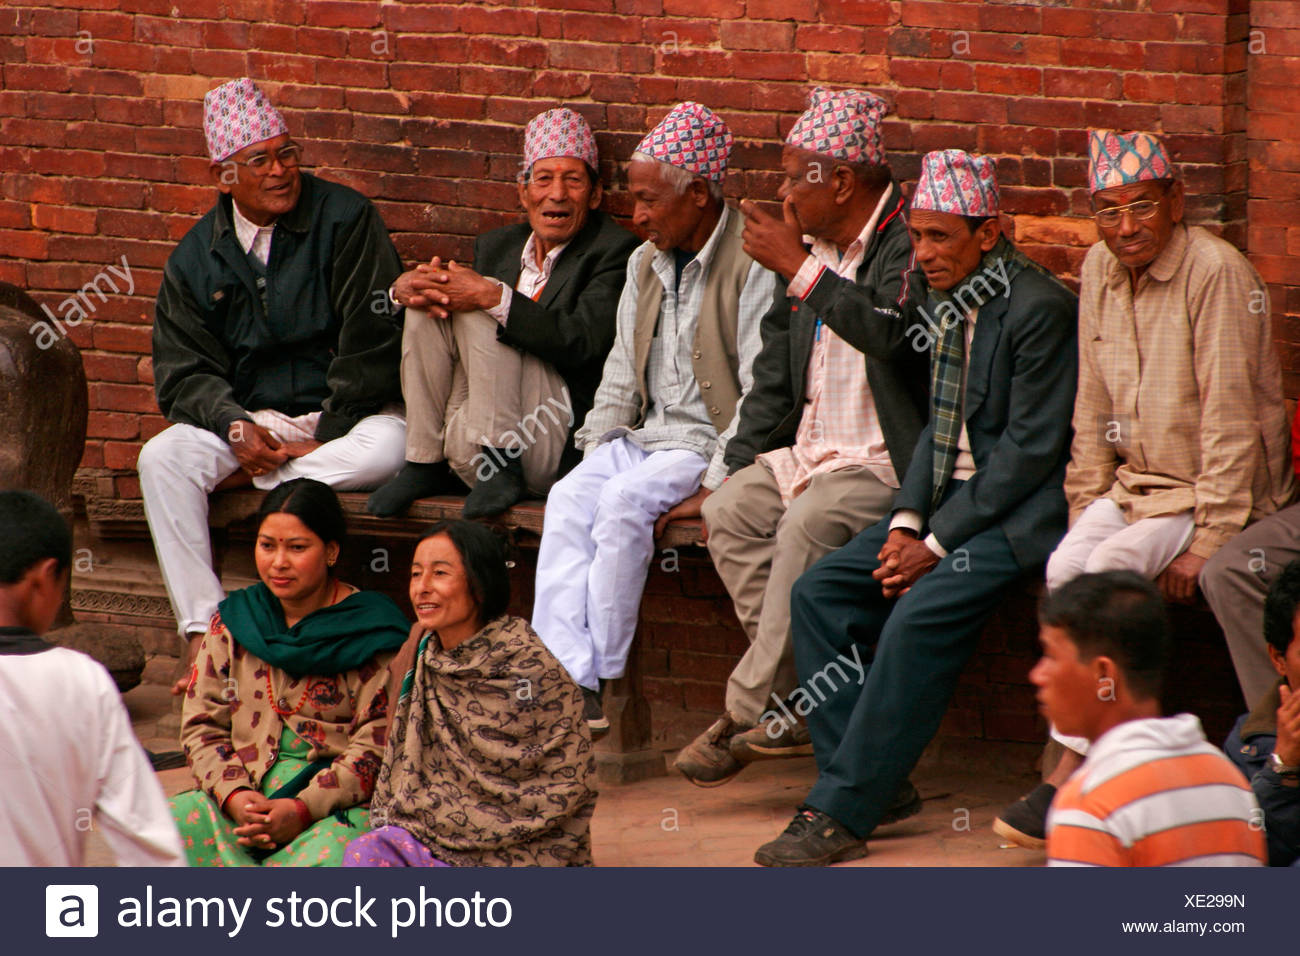 Six elderly gentlemen wearing typical Nepalese head coverings called 'topi' sitting on a bench chatting, Patan in the Kathmandu - Stock Image